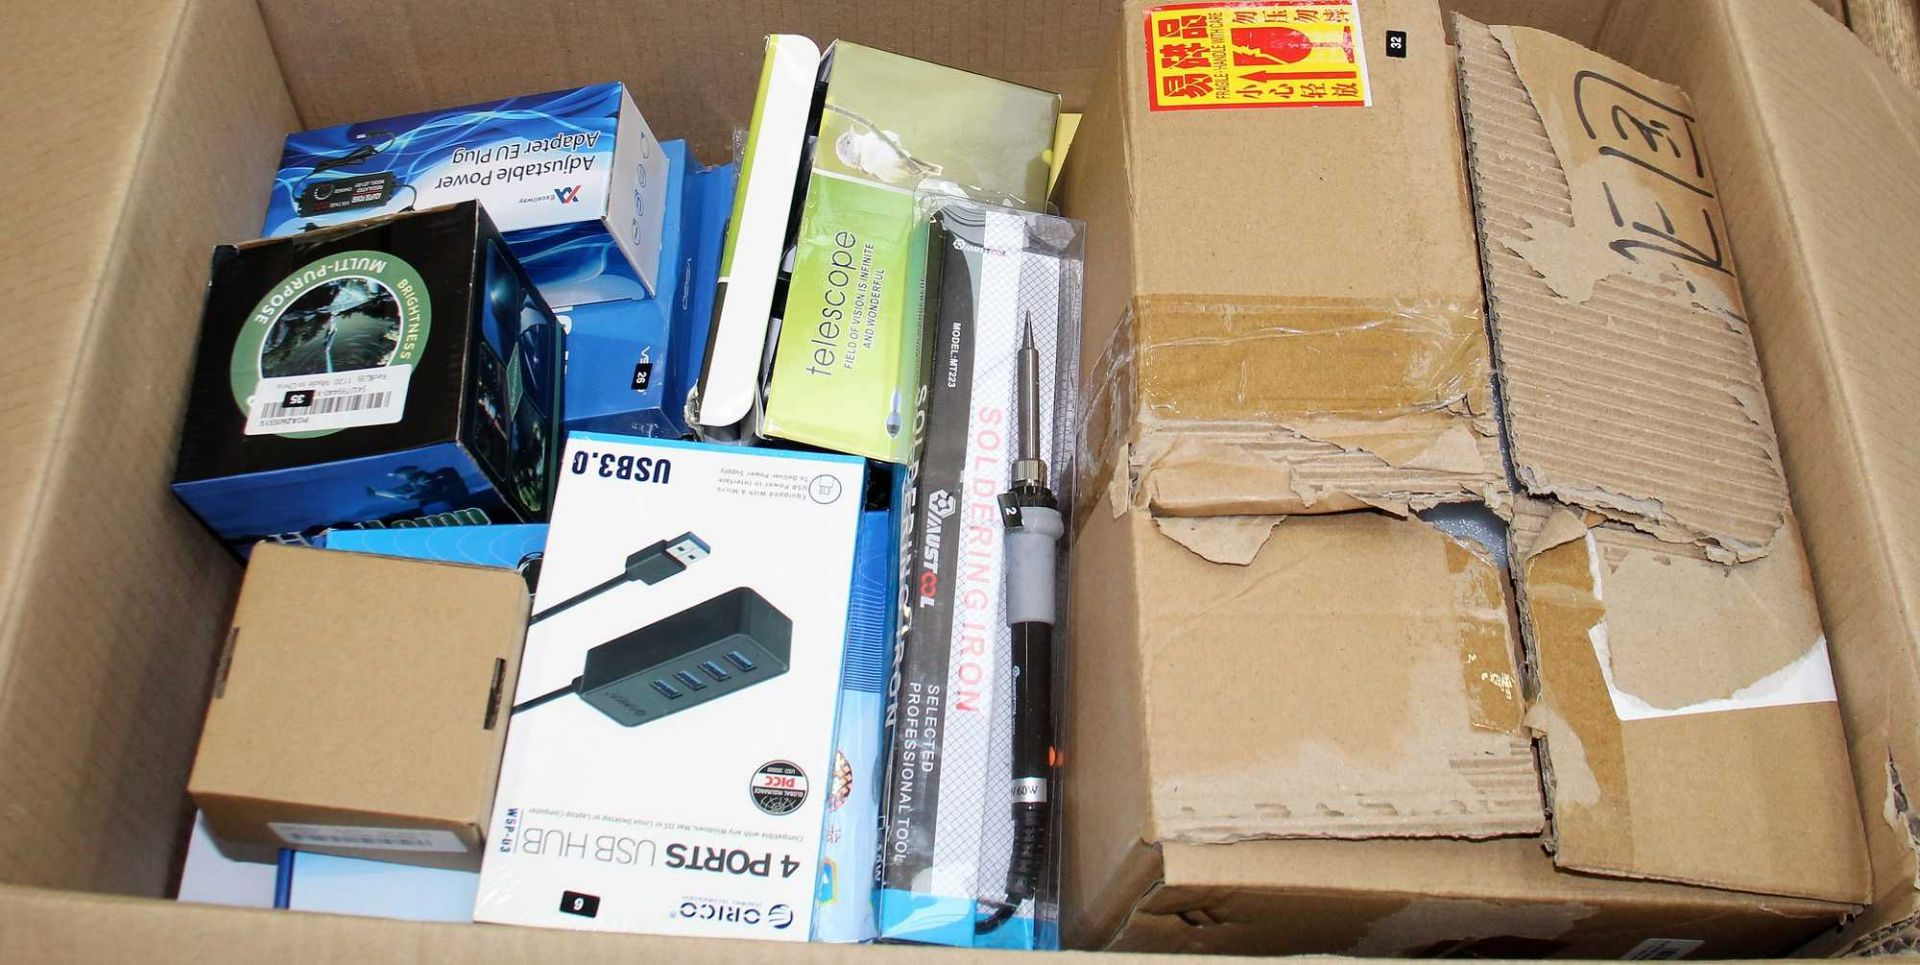 A box of assorted as new electrical items and accessories to include FPV Drone, Smart Doorbell, - Image 2 of 6